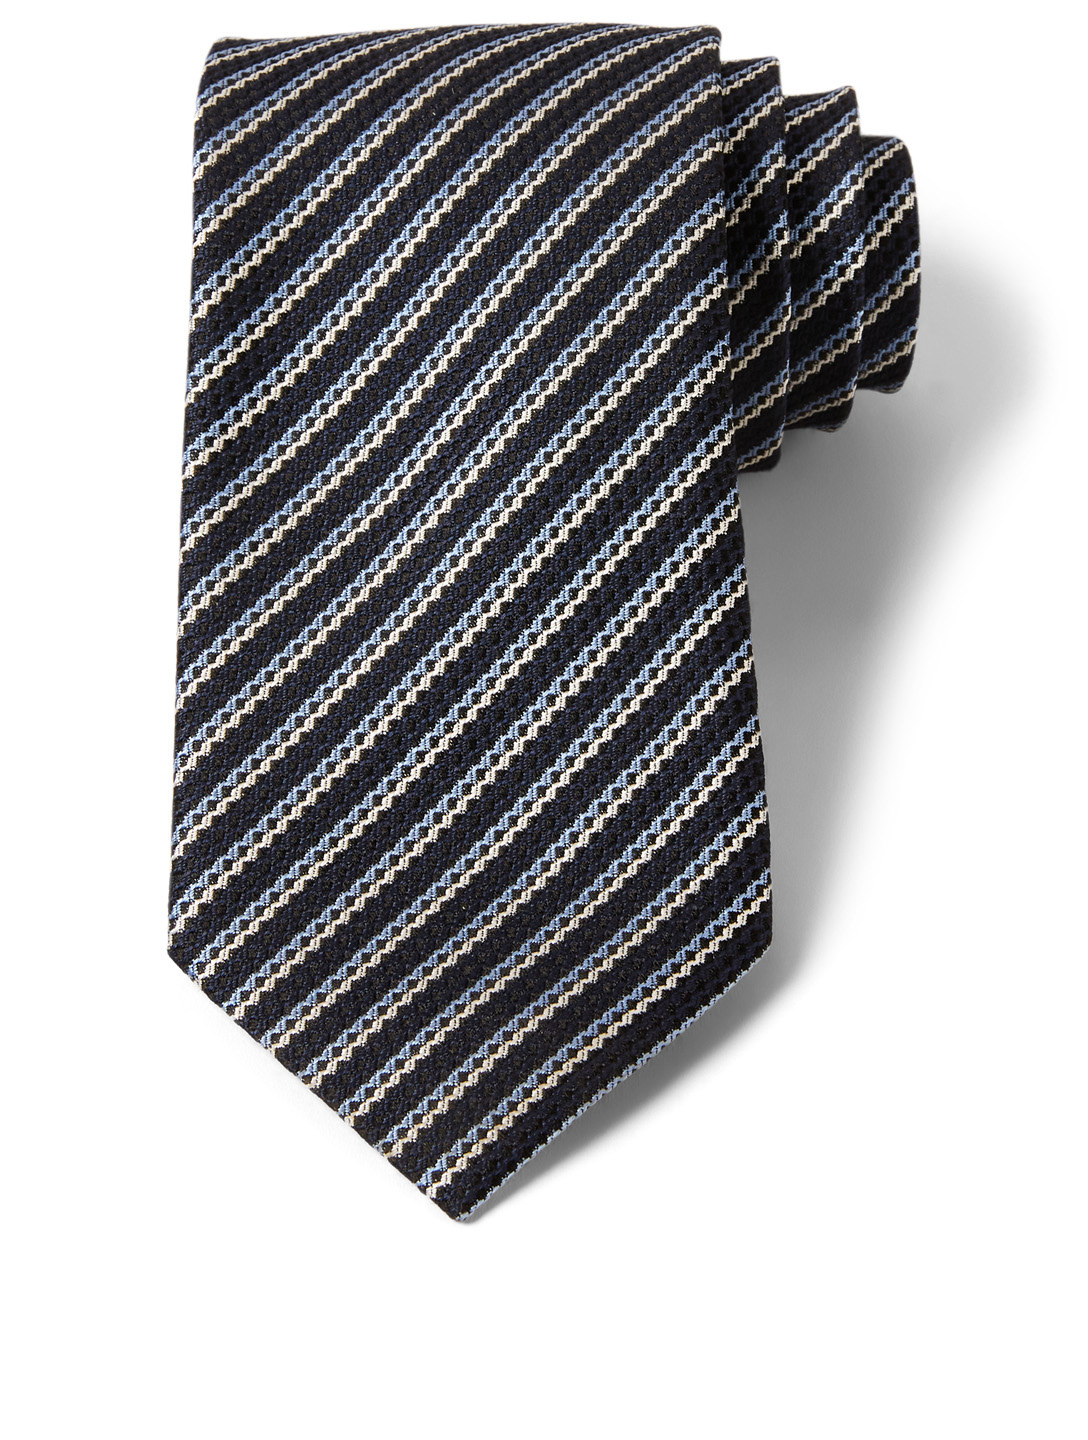 ERMENEGILDO ZEGNA Striped Silk Tie Men's Blue